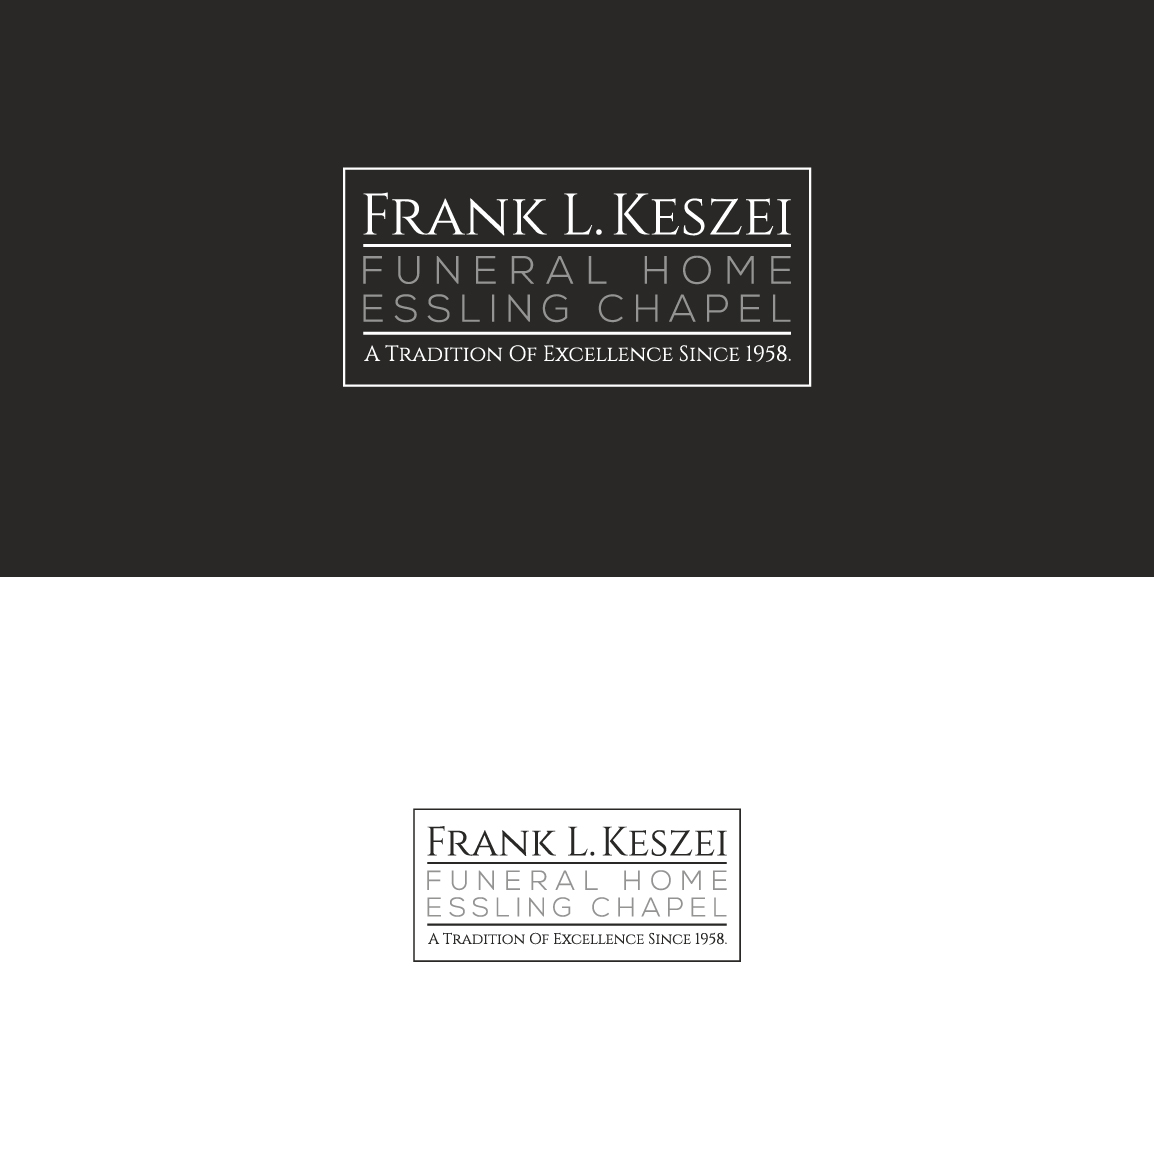 48 Serious Traditional Funeral Home Logo Designs For Frank L Keszei Funeral Home Essling